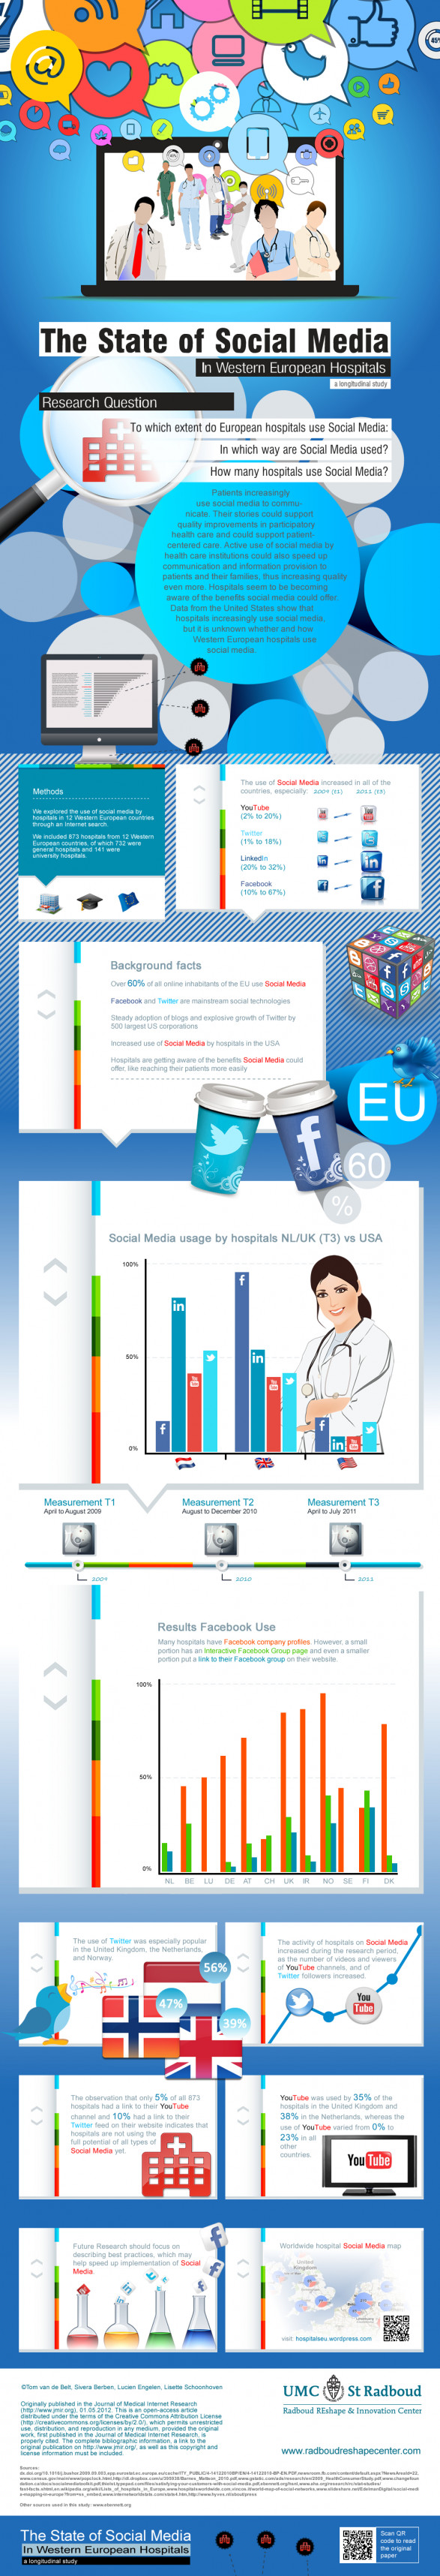 Health Care Social Media: Hospitals in Europe Embrace Social Media